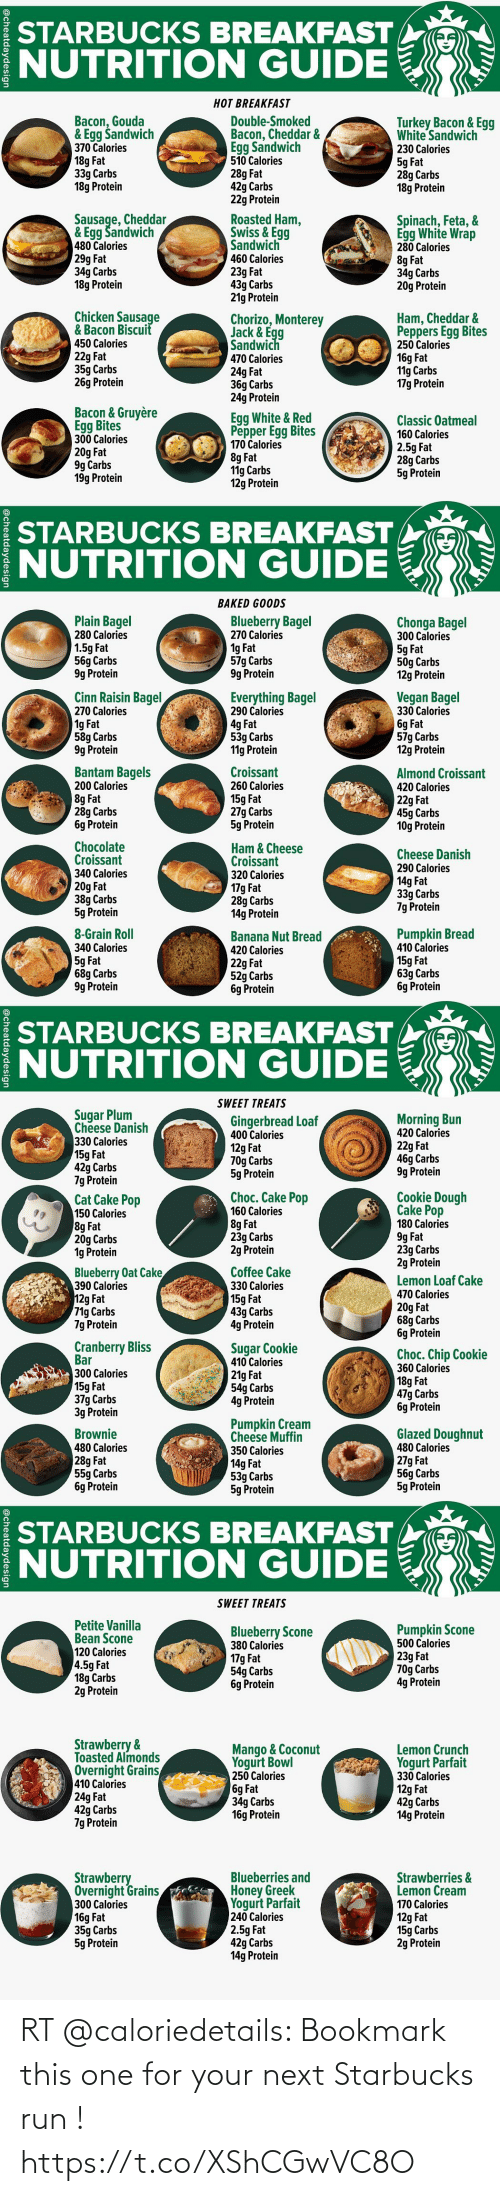 Starbucks Sausage Egg And Cheese Calories : starbucks, sausage, cheese, calories, STARBUCKS, BREAKFAST, NUTRITION, GUIDE, Bacon, Gouda, Šandwich, Calories, Carbs, Protein, Double-Smoked, Cheddar, Sandwich, Turkey, White